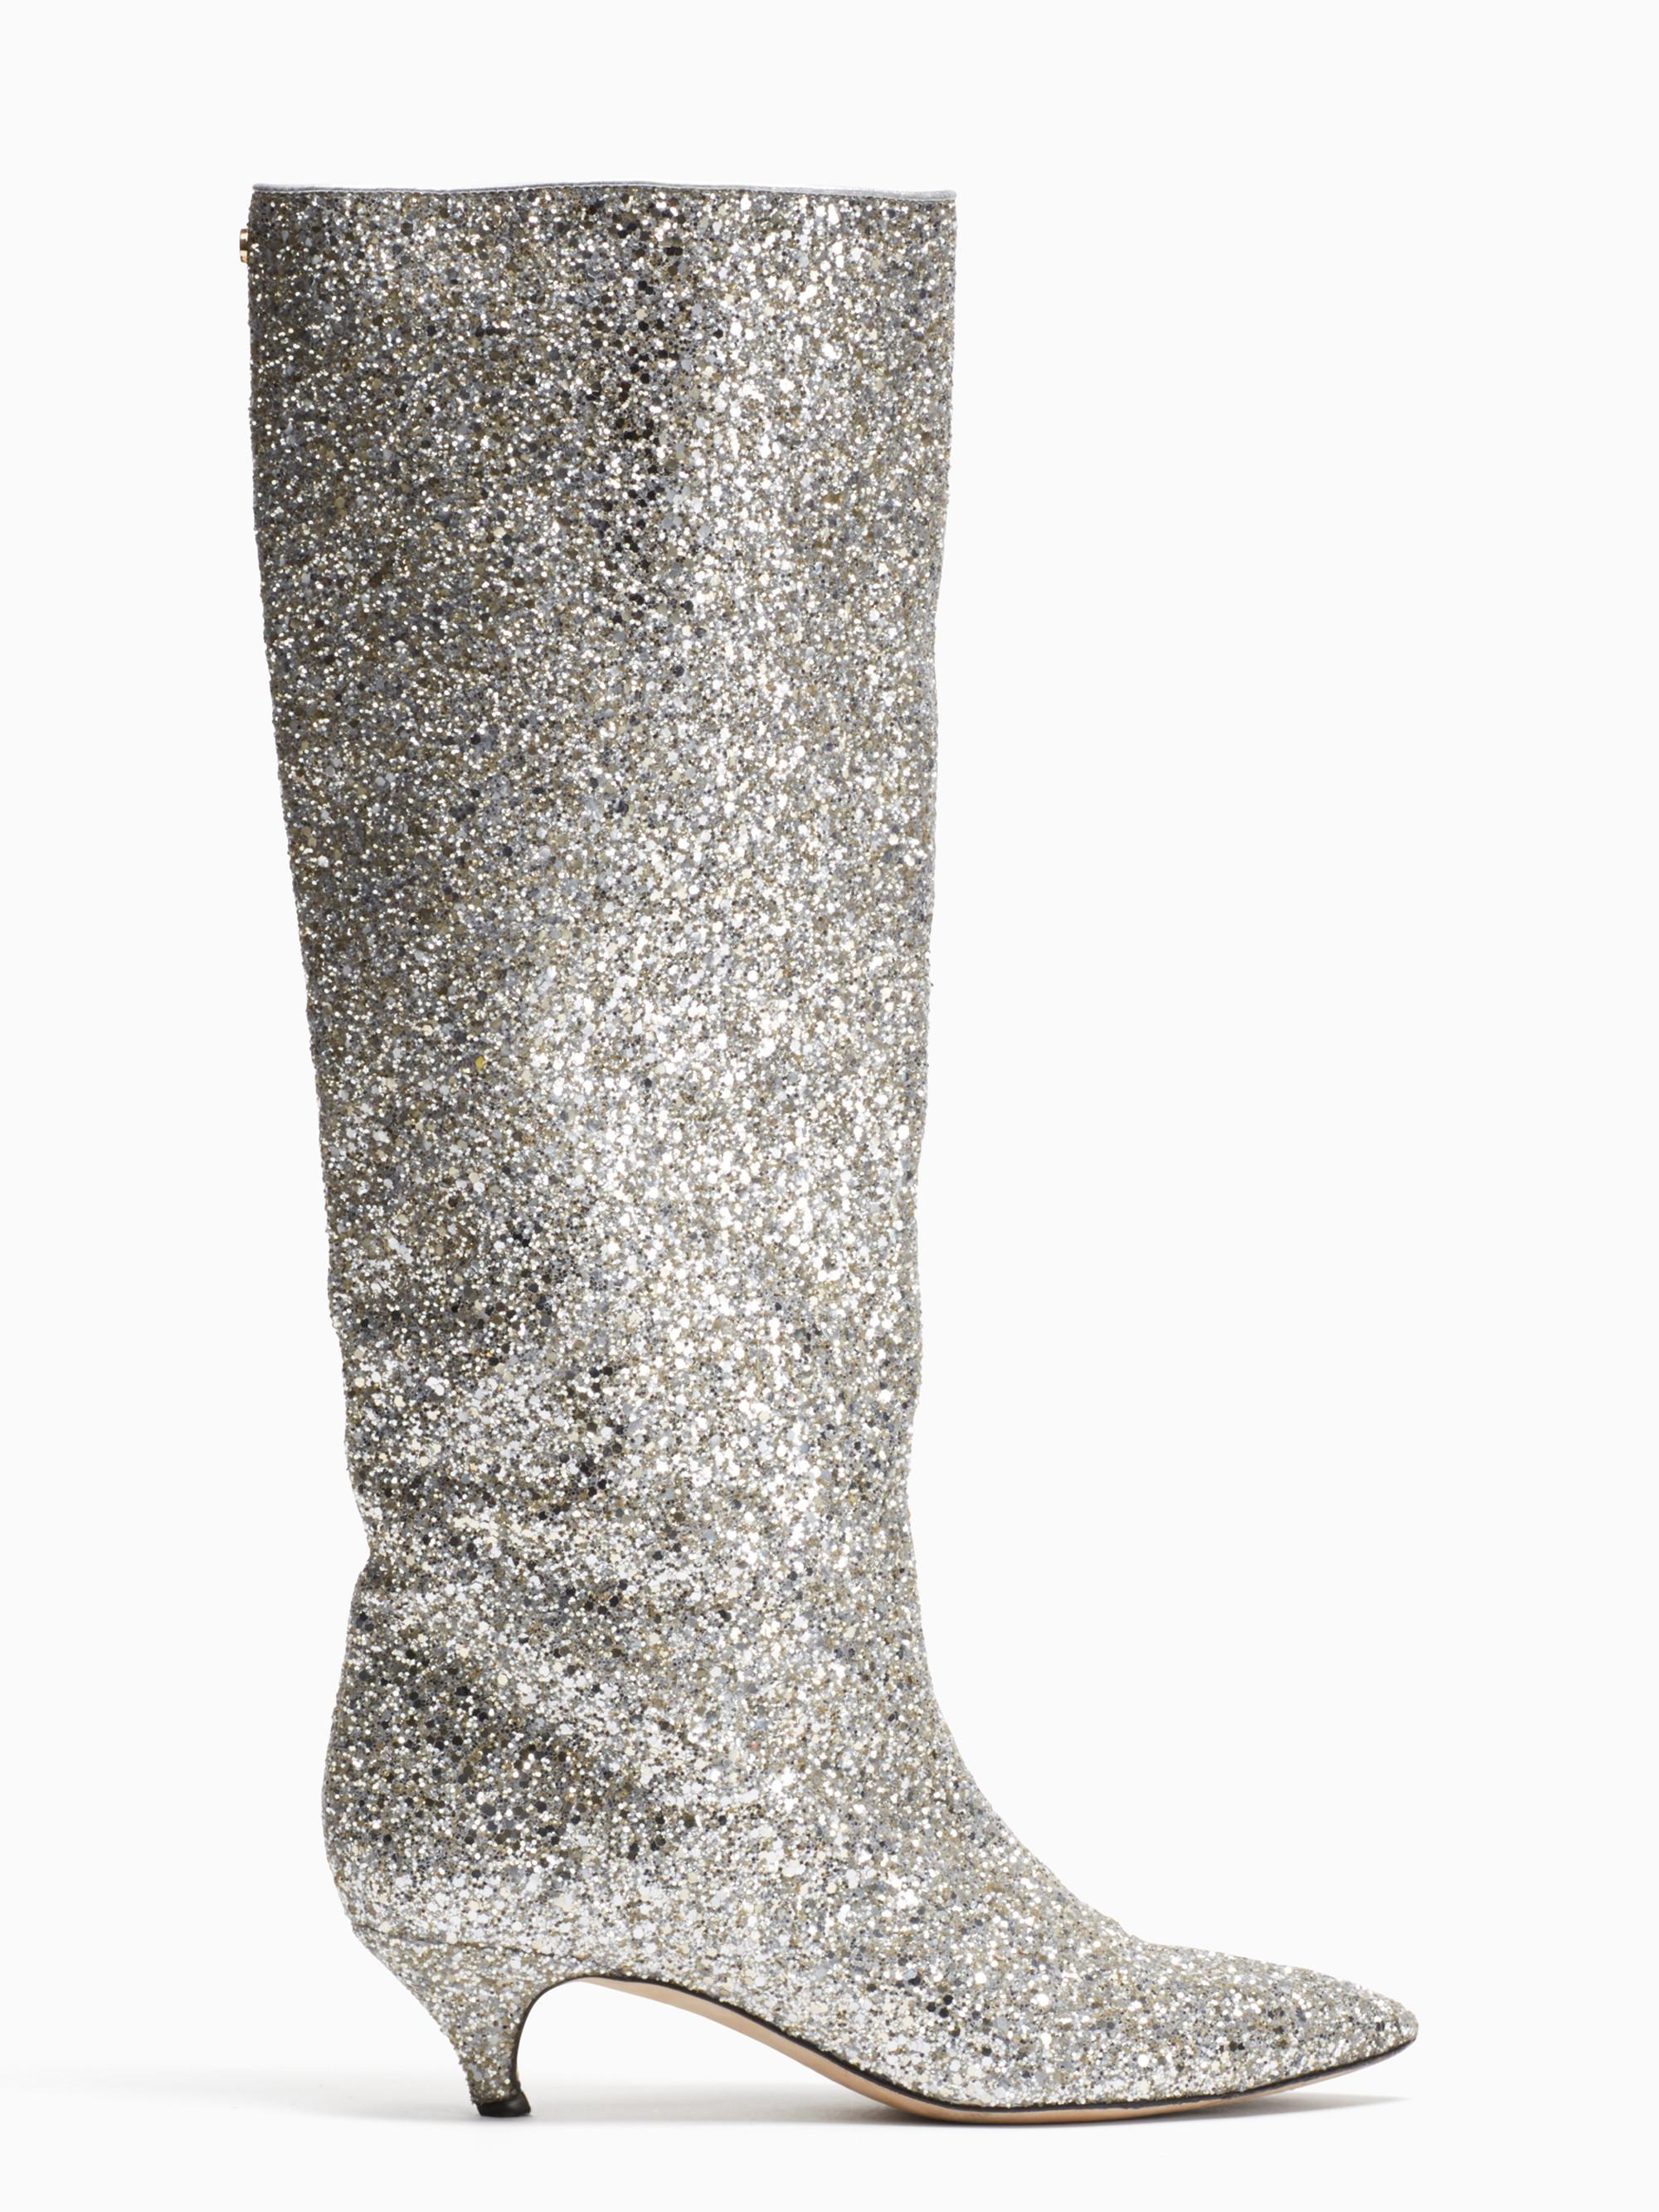 d54e8c5ac Kate Spade Olina Boots in Metallic - Lyst